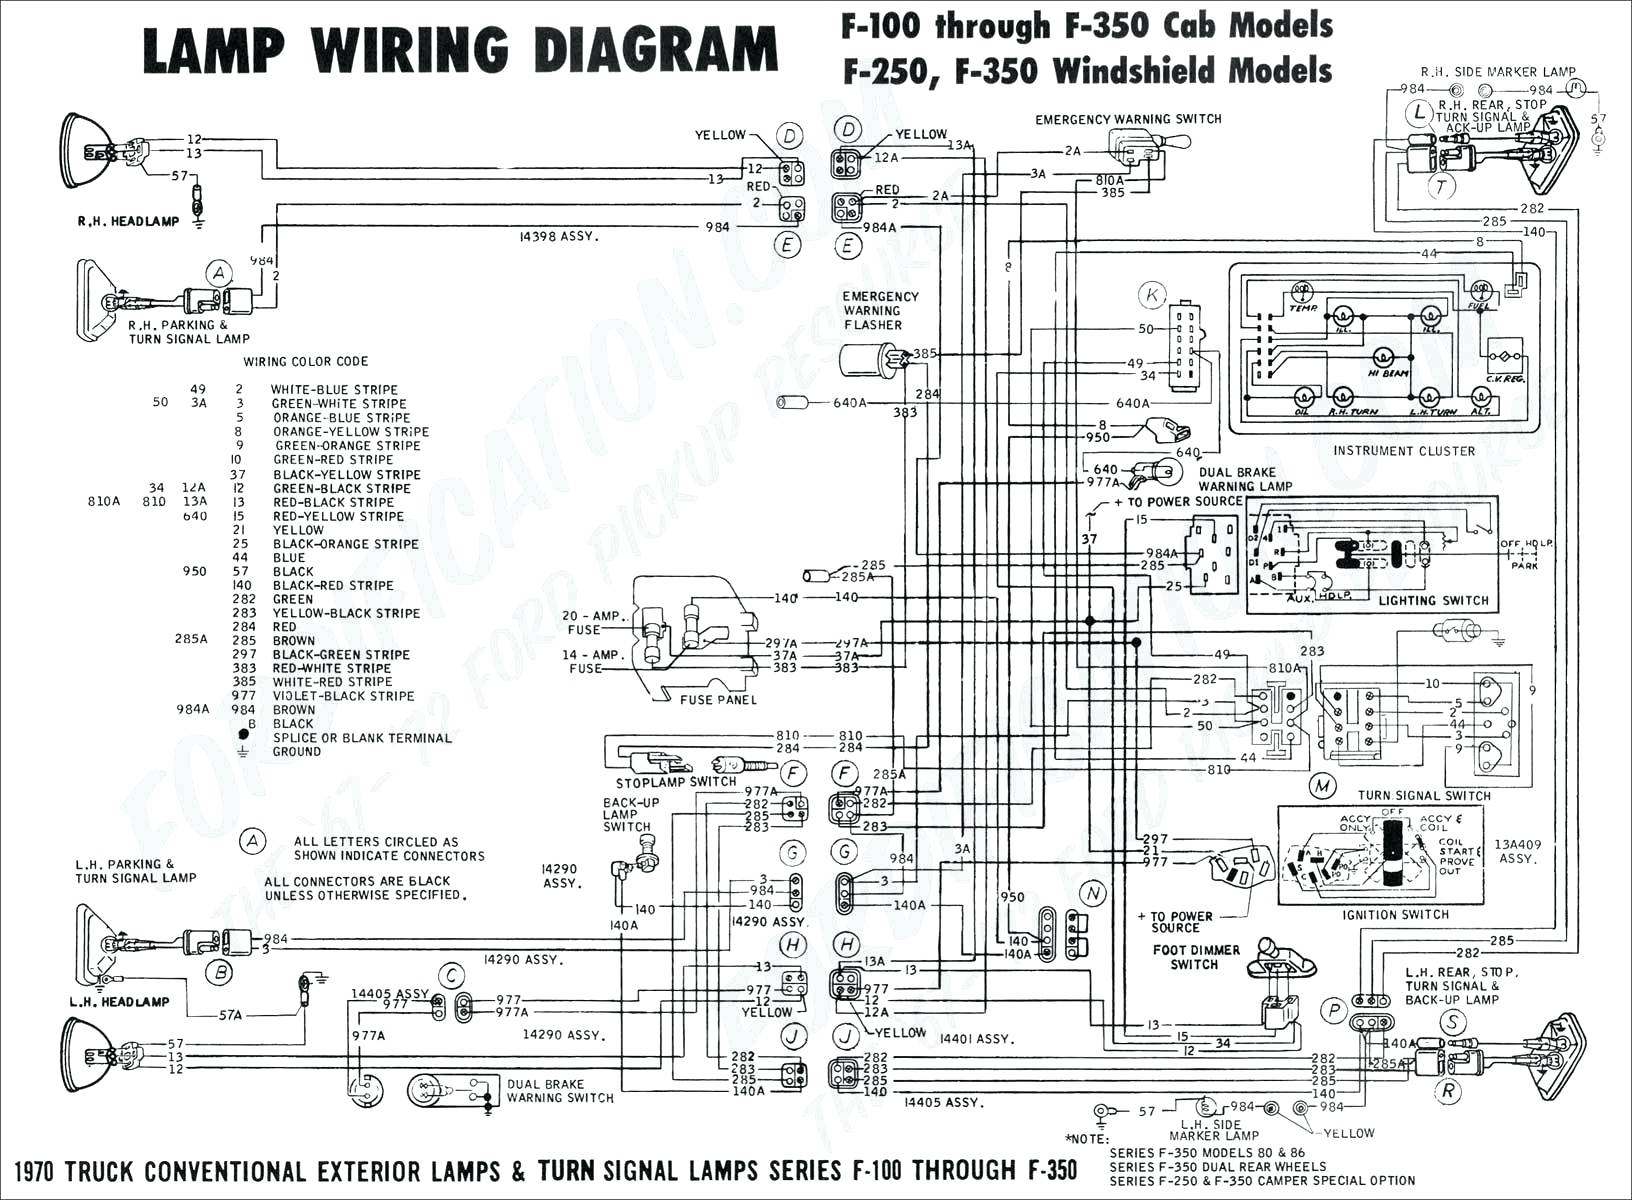 98 dodge ram trailer wiring diagram download 98 dodge wiring harness diagram